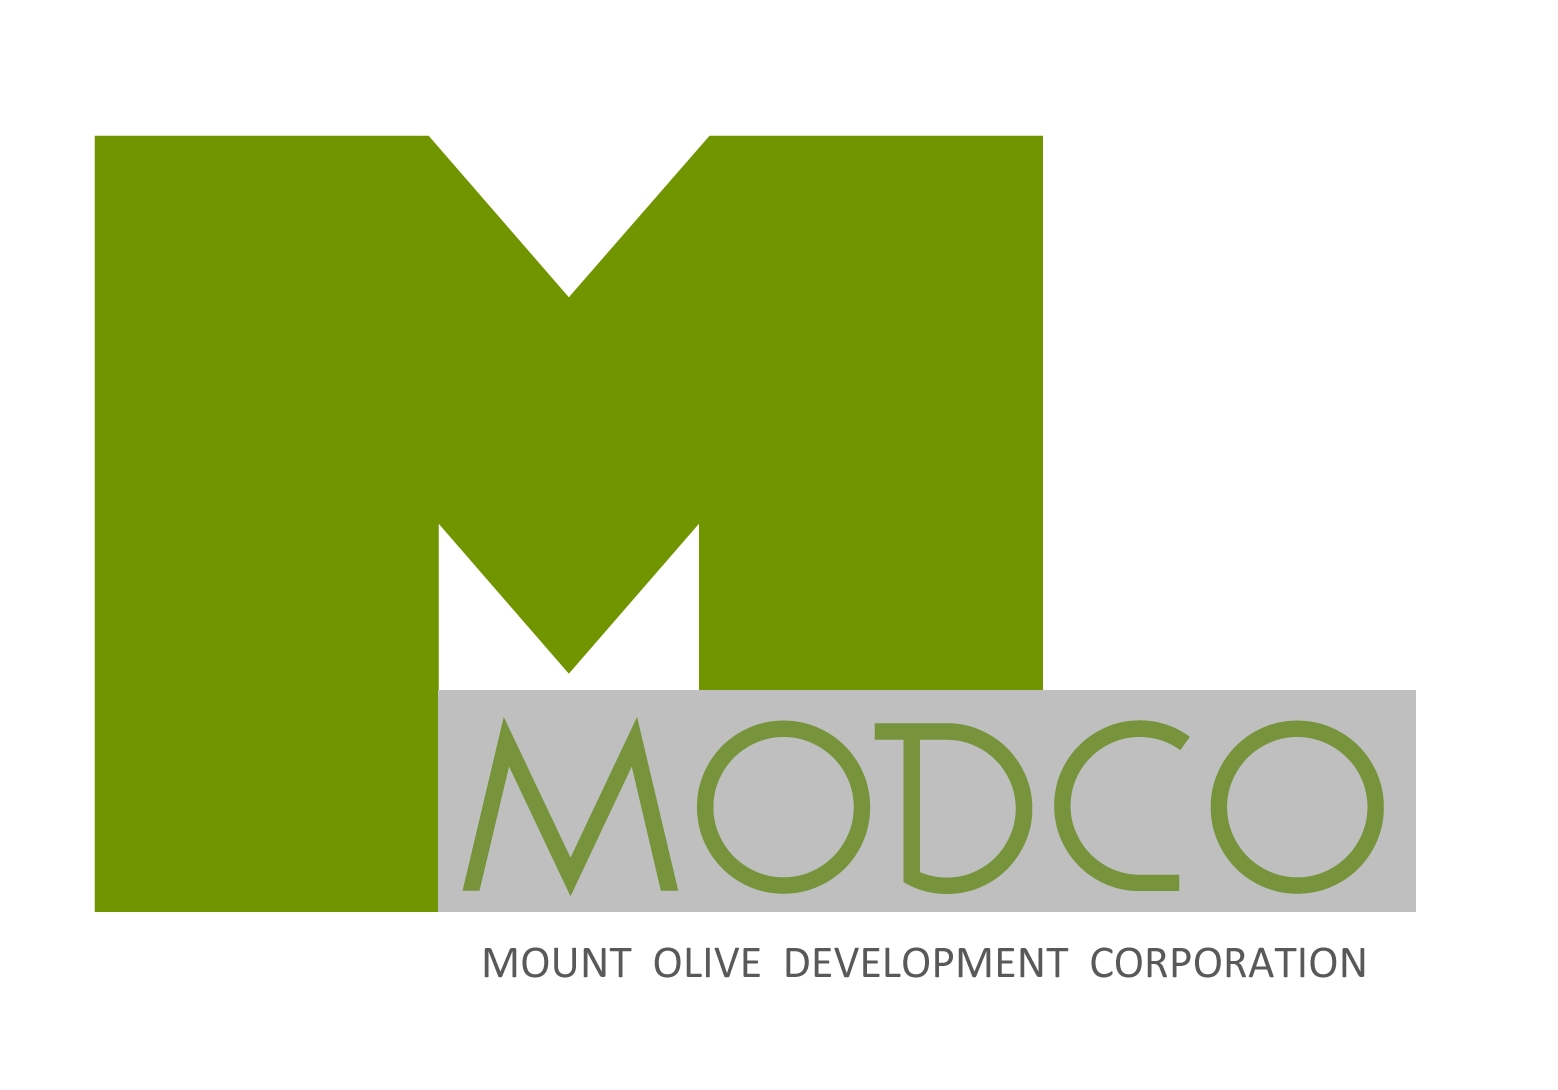 Mount Olive Development Corporation